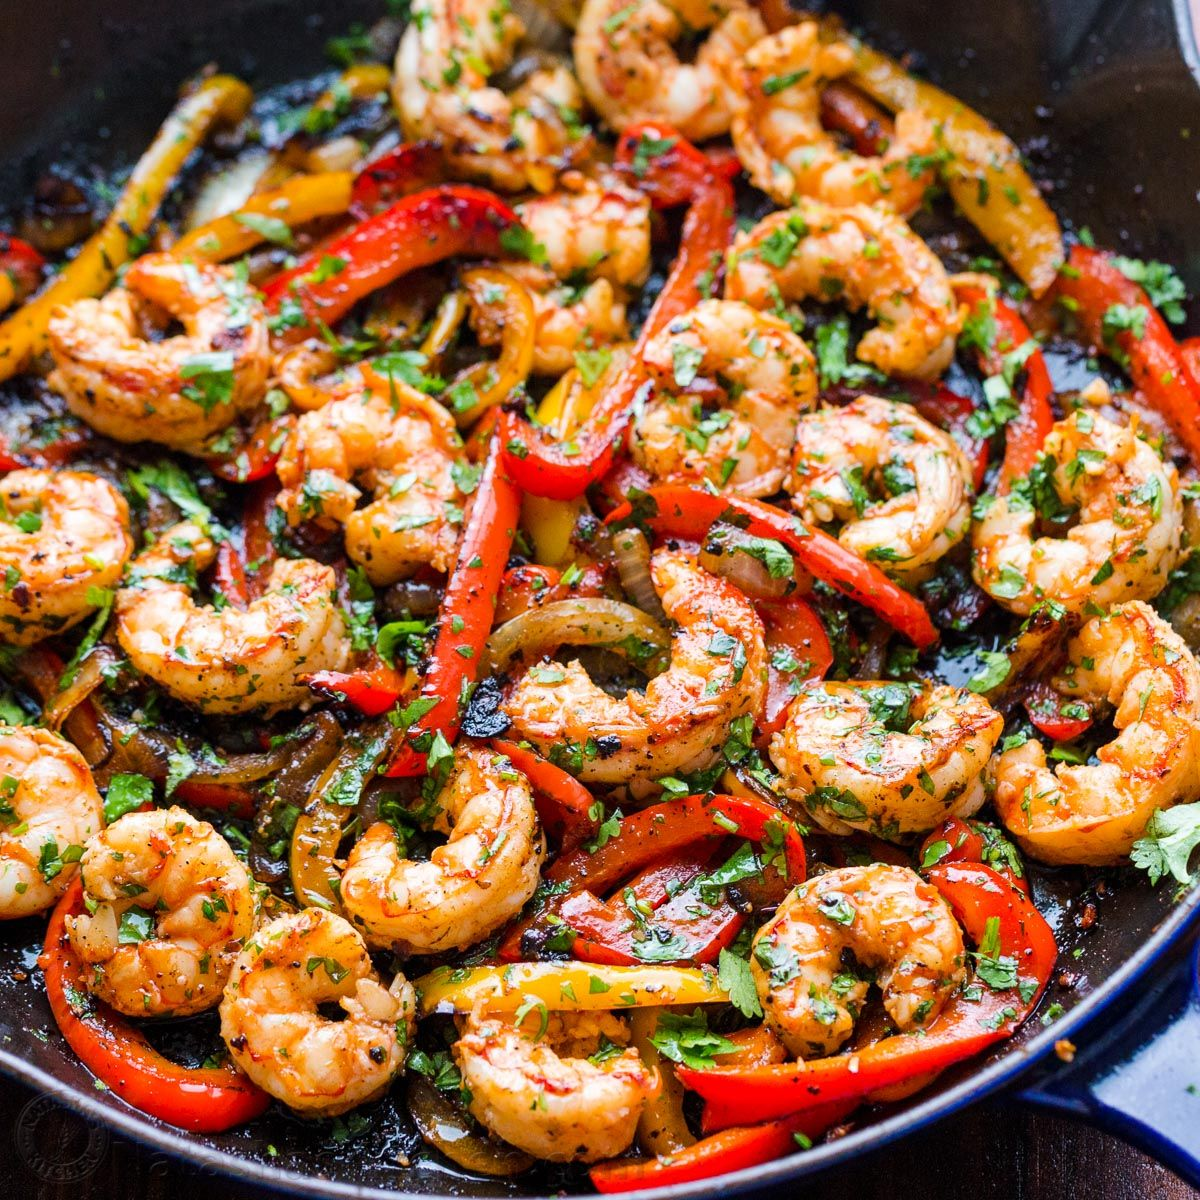 Easy 1 Pan 30 Minute Shrimp Fajitas With The Best Marinade Shrimpfajitas Shrimpfajita